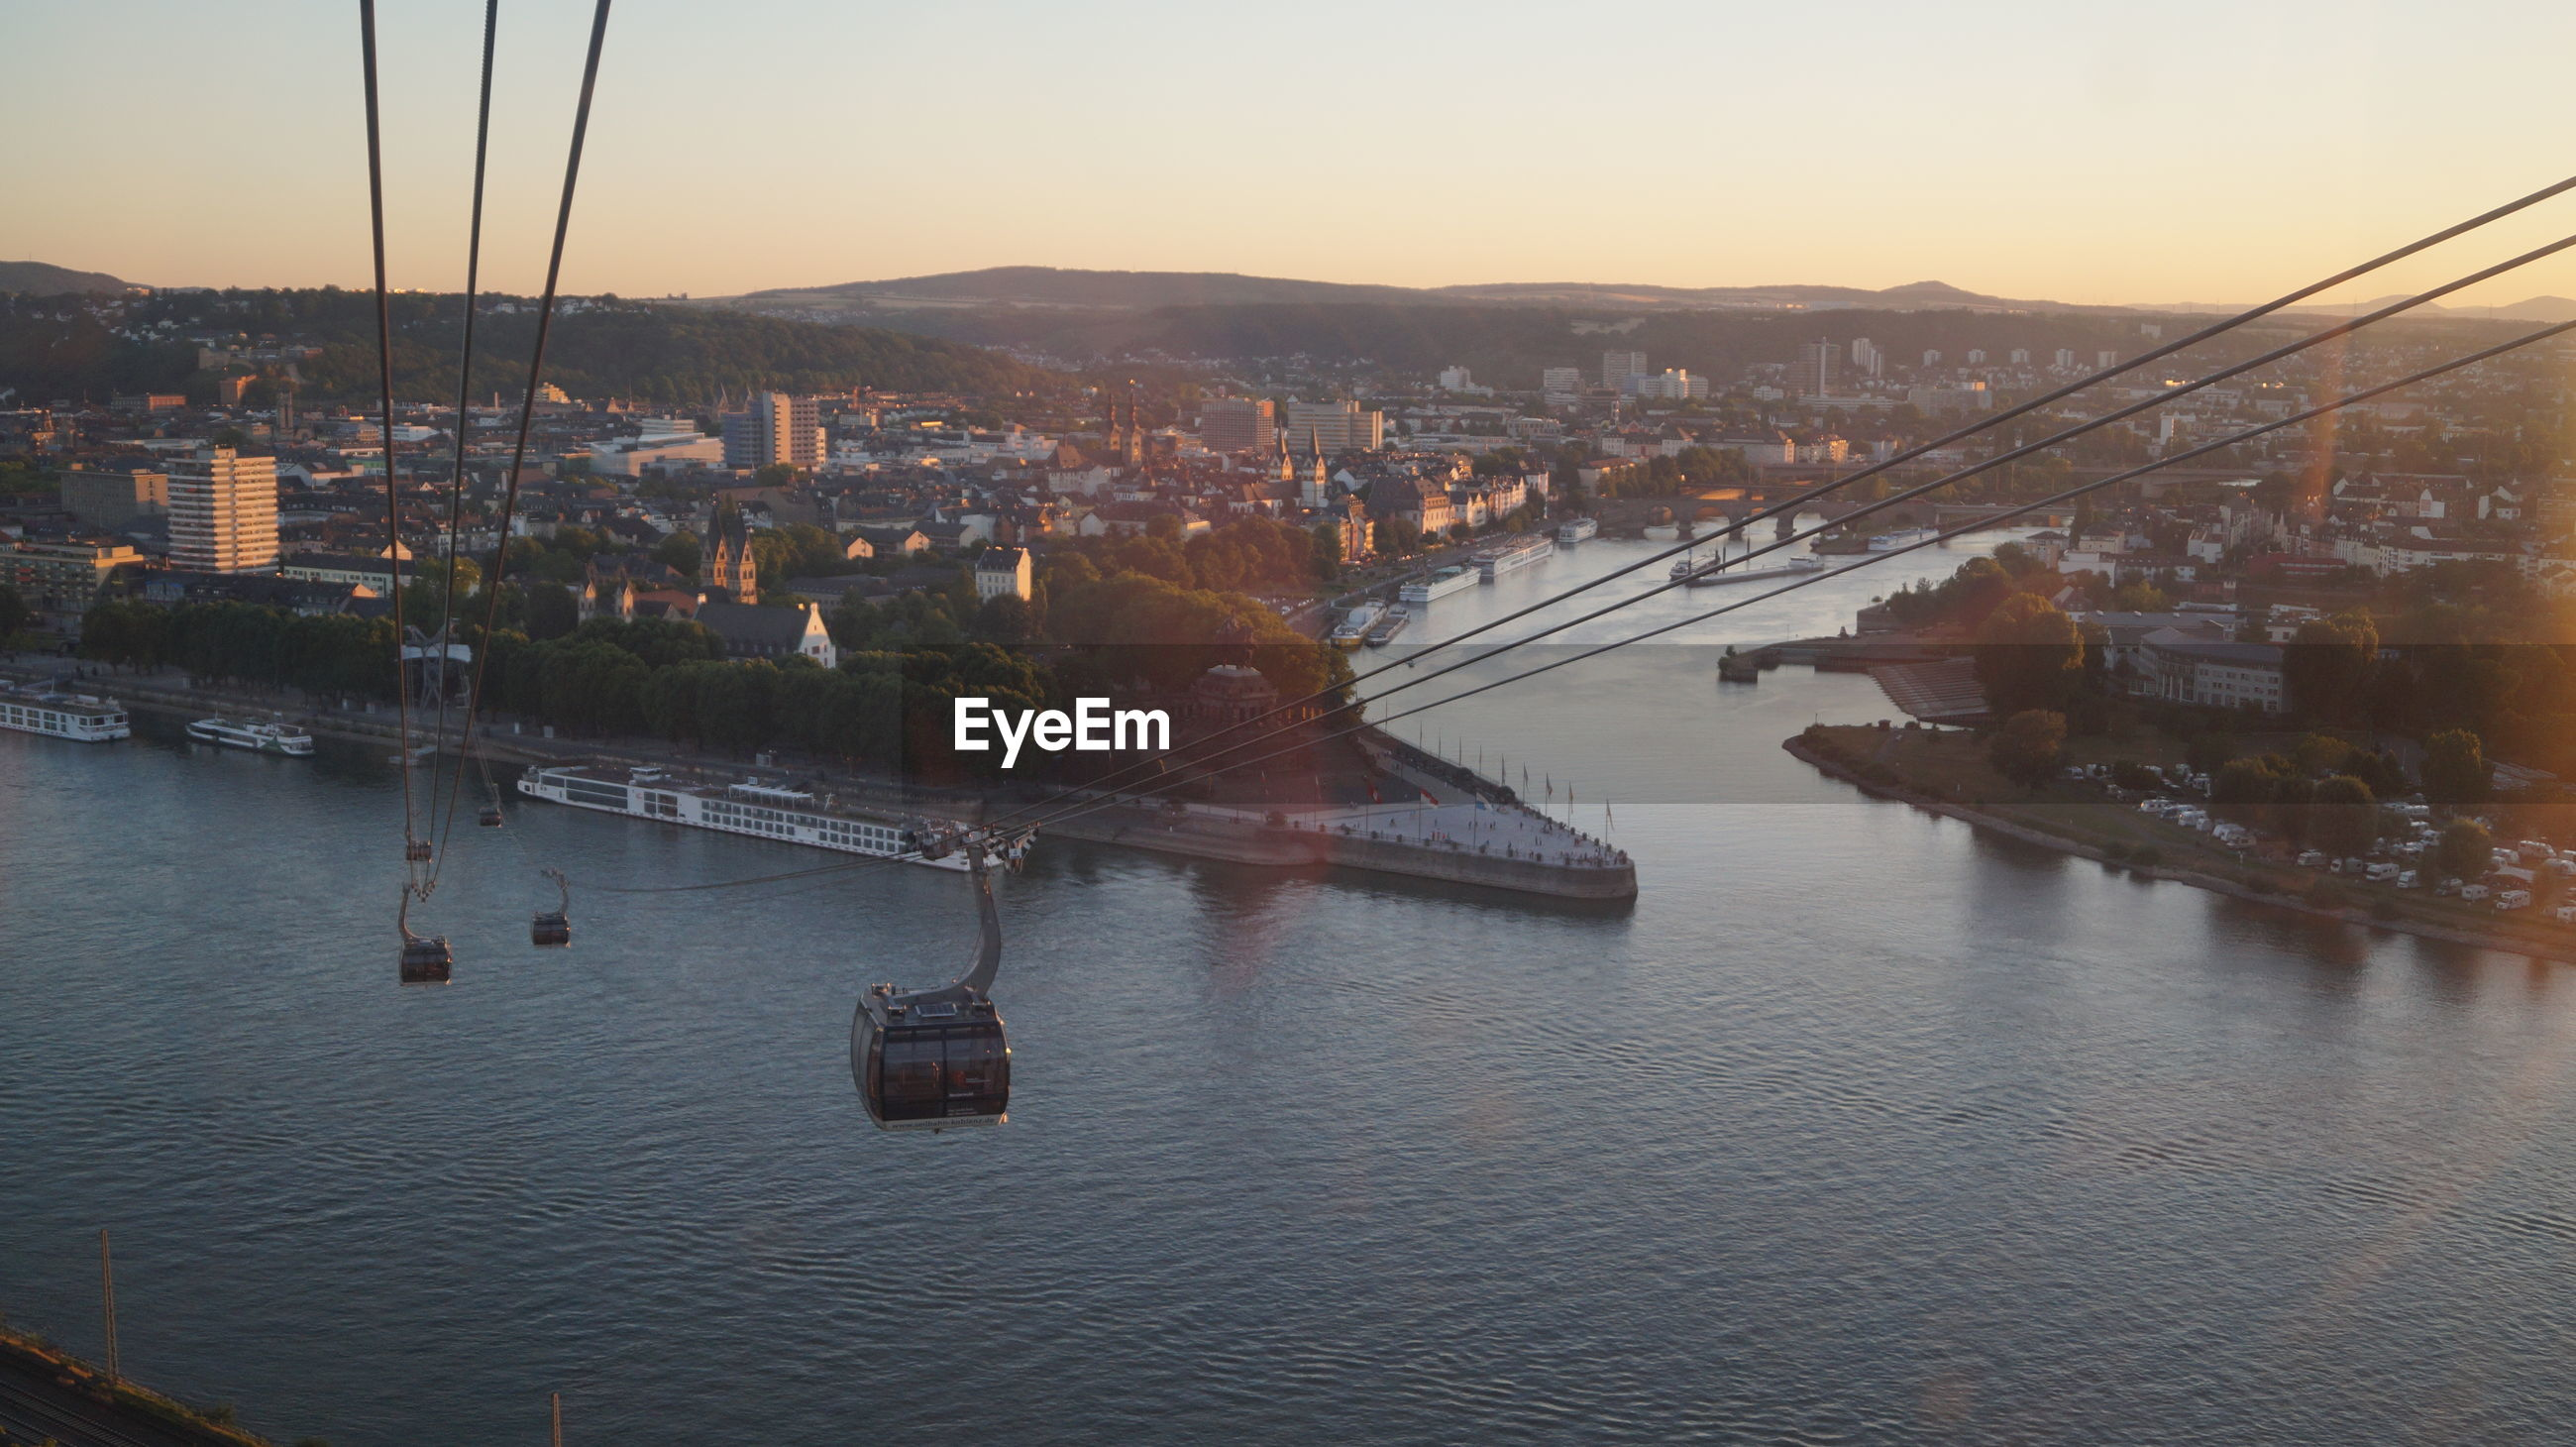 High angle view of overhead cable car over river in city